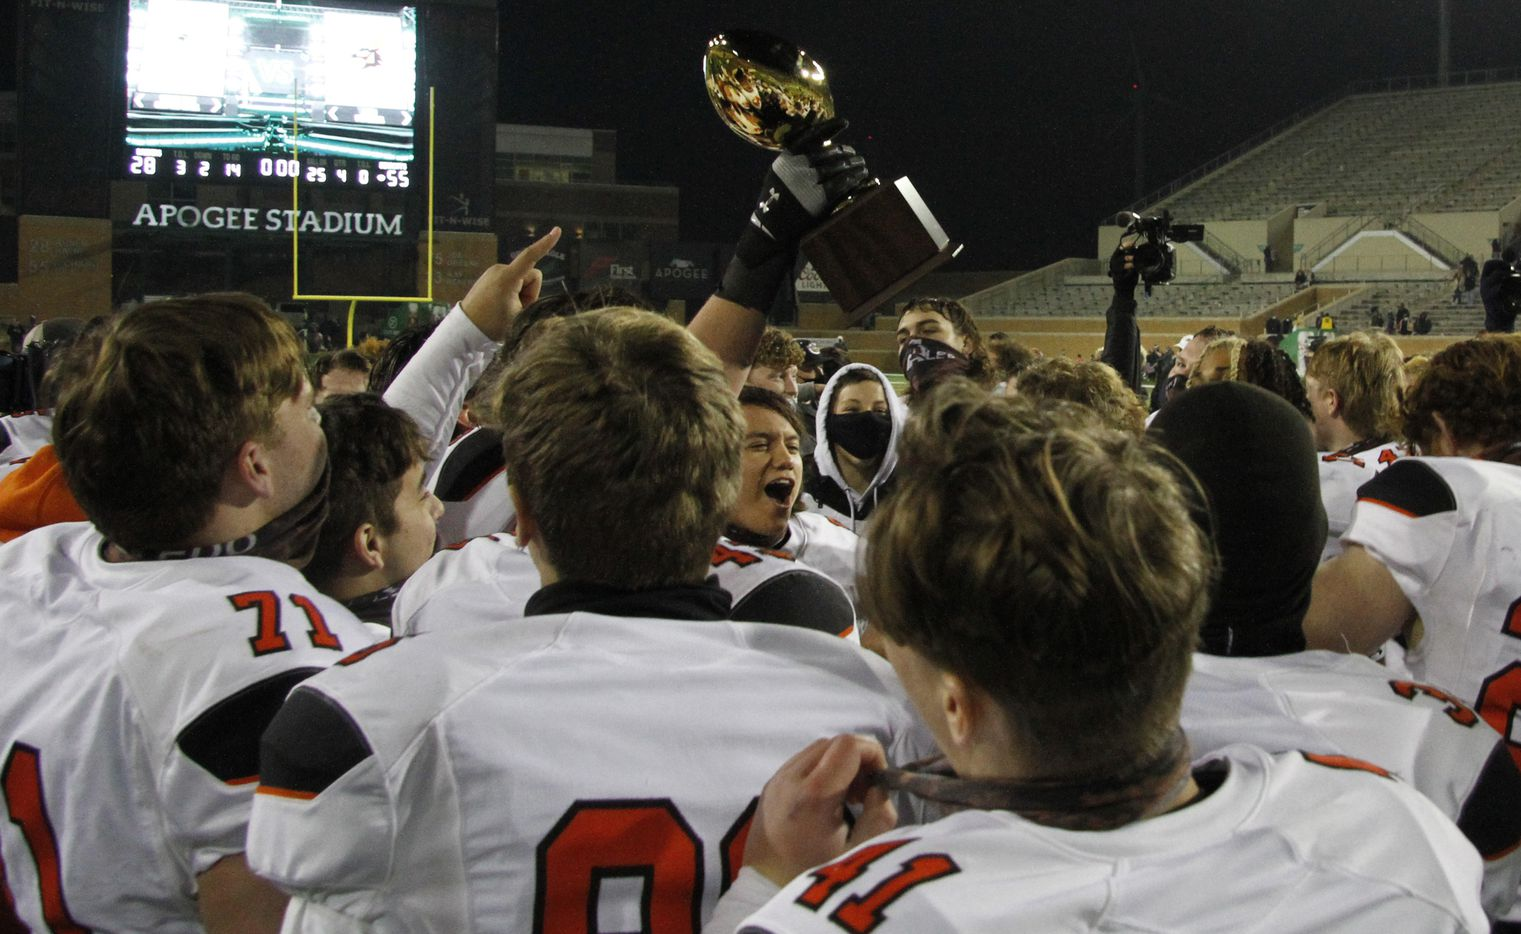 Aledo Bearcats players celebrate with the Class 5A Division ll championship trophy presented following their 55-28 victory over Wichita Falls Rider to advance to the state tournament. The two teams played their Class 5A Division ll state semifinal football playoff game at Apogee Stadium in Denton on January 8, 2021. (Steve Hamm/ Special Contributor)